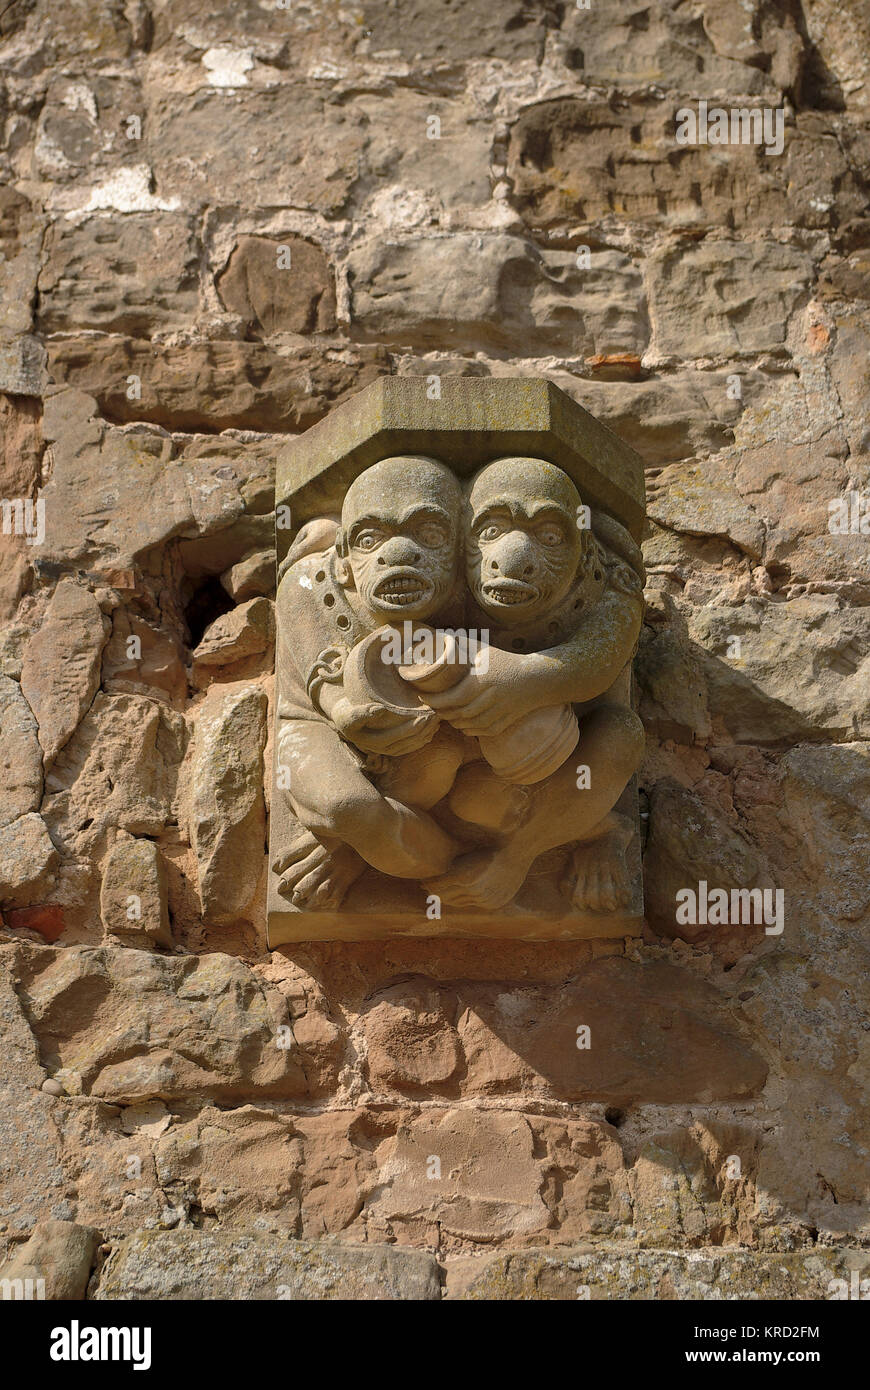 Close-up of gargoyles at Rufford Hall, Nottingham, showing two grotesque human figures huddled together.       Date: - Stock Image